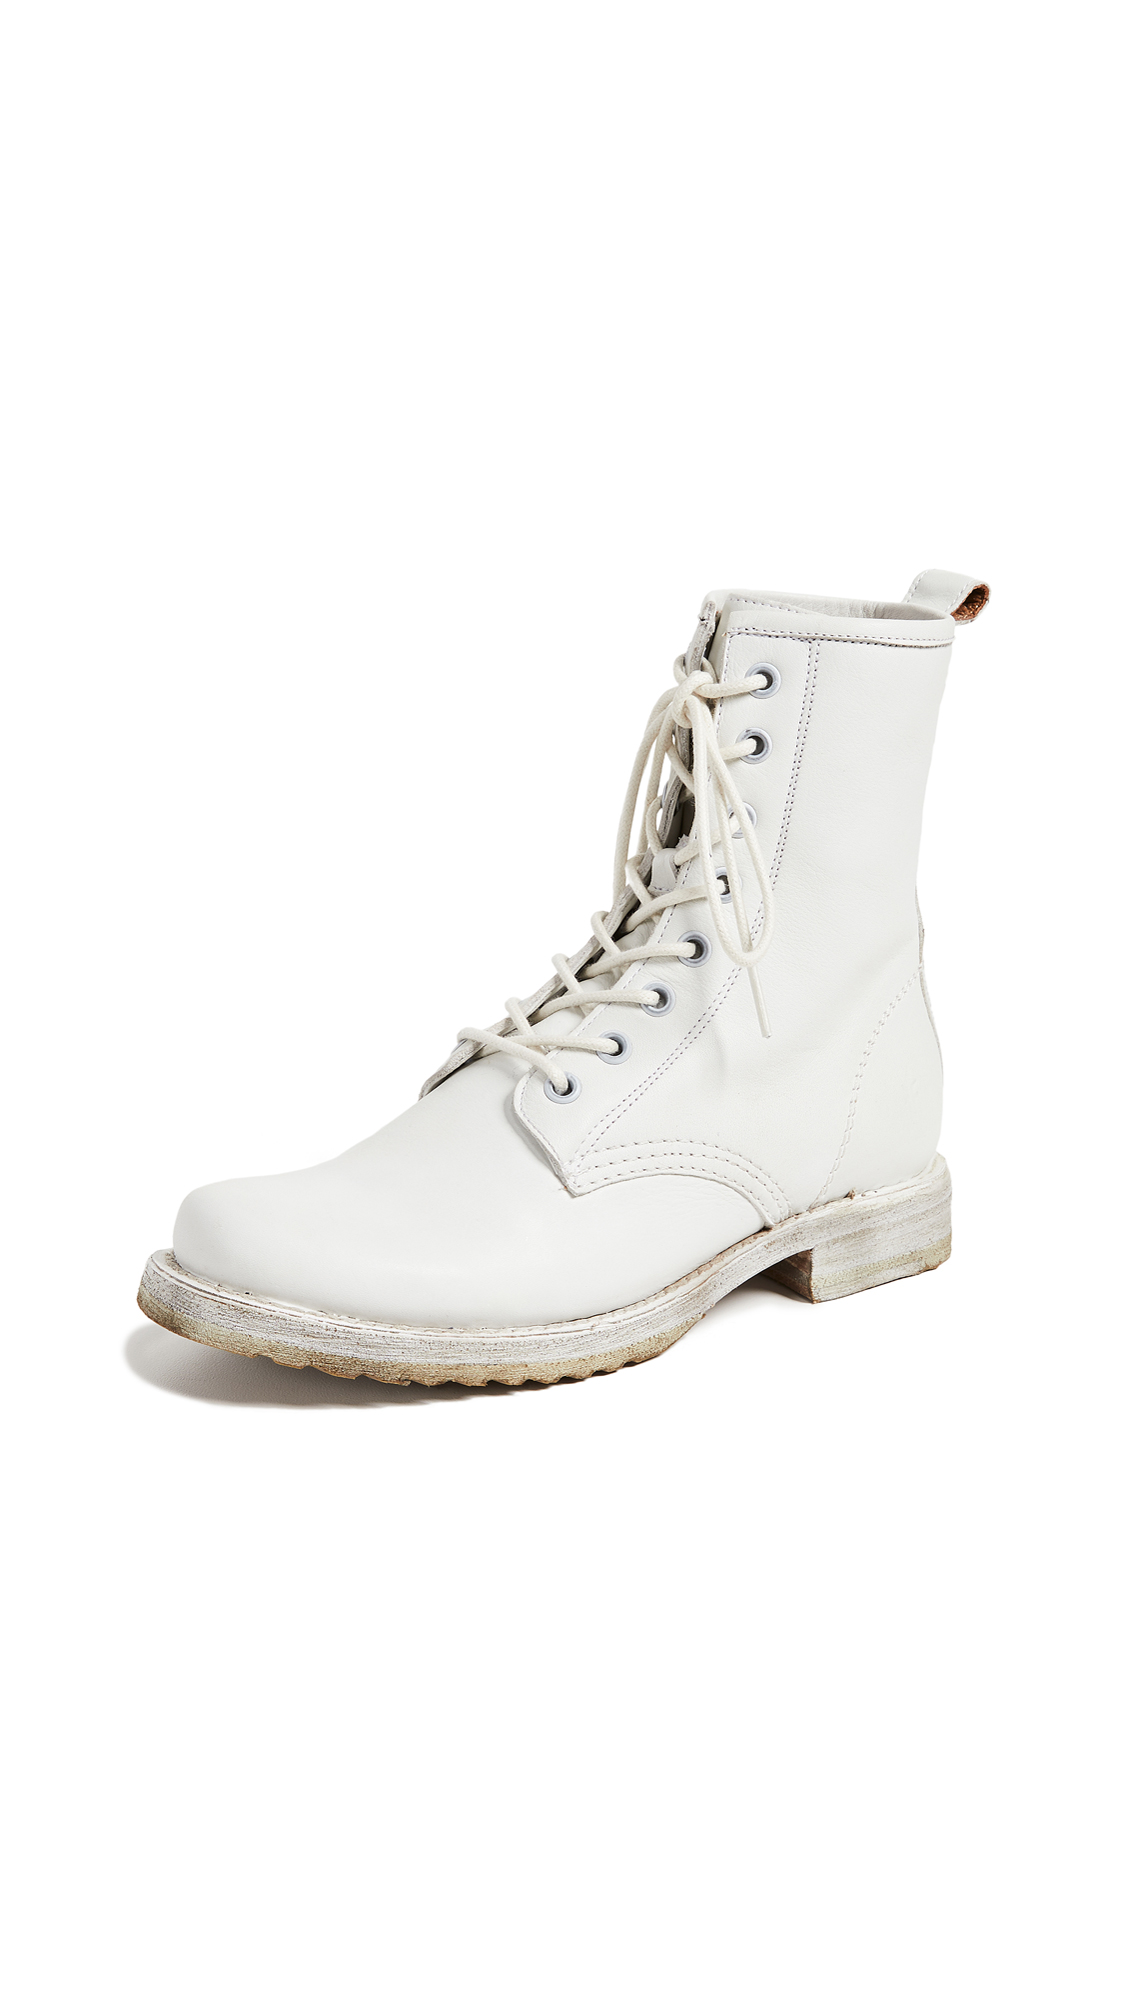 FRYE Women'S Veronica Round Toe Leather Combat Booties in White